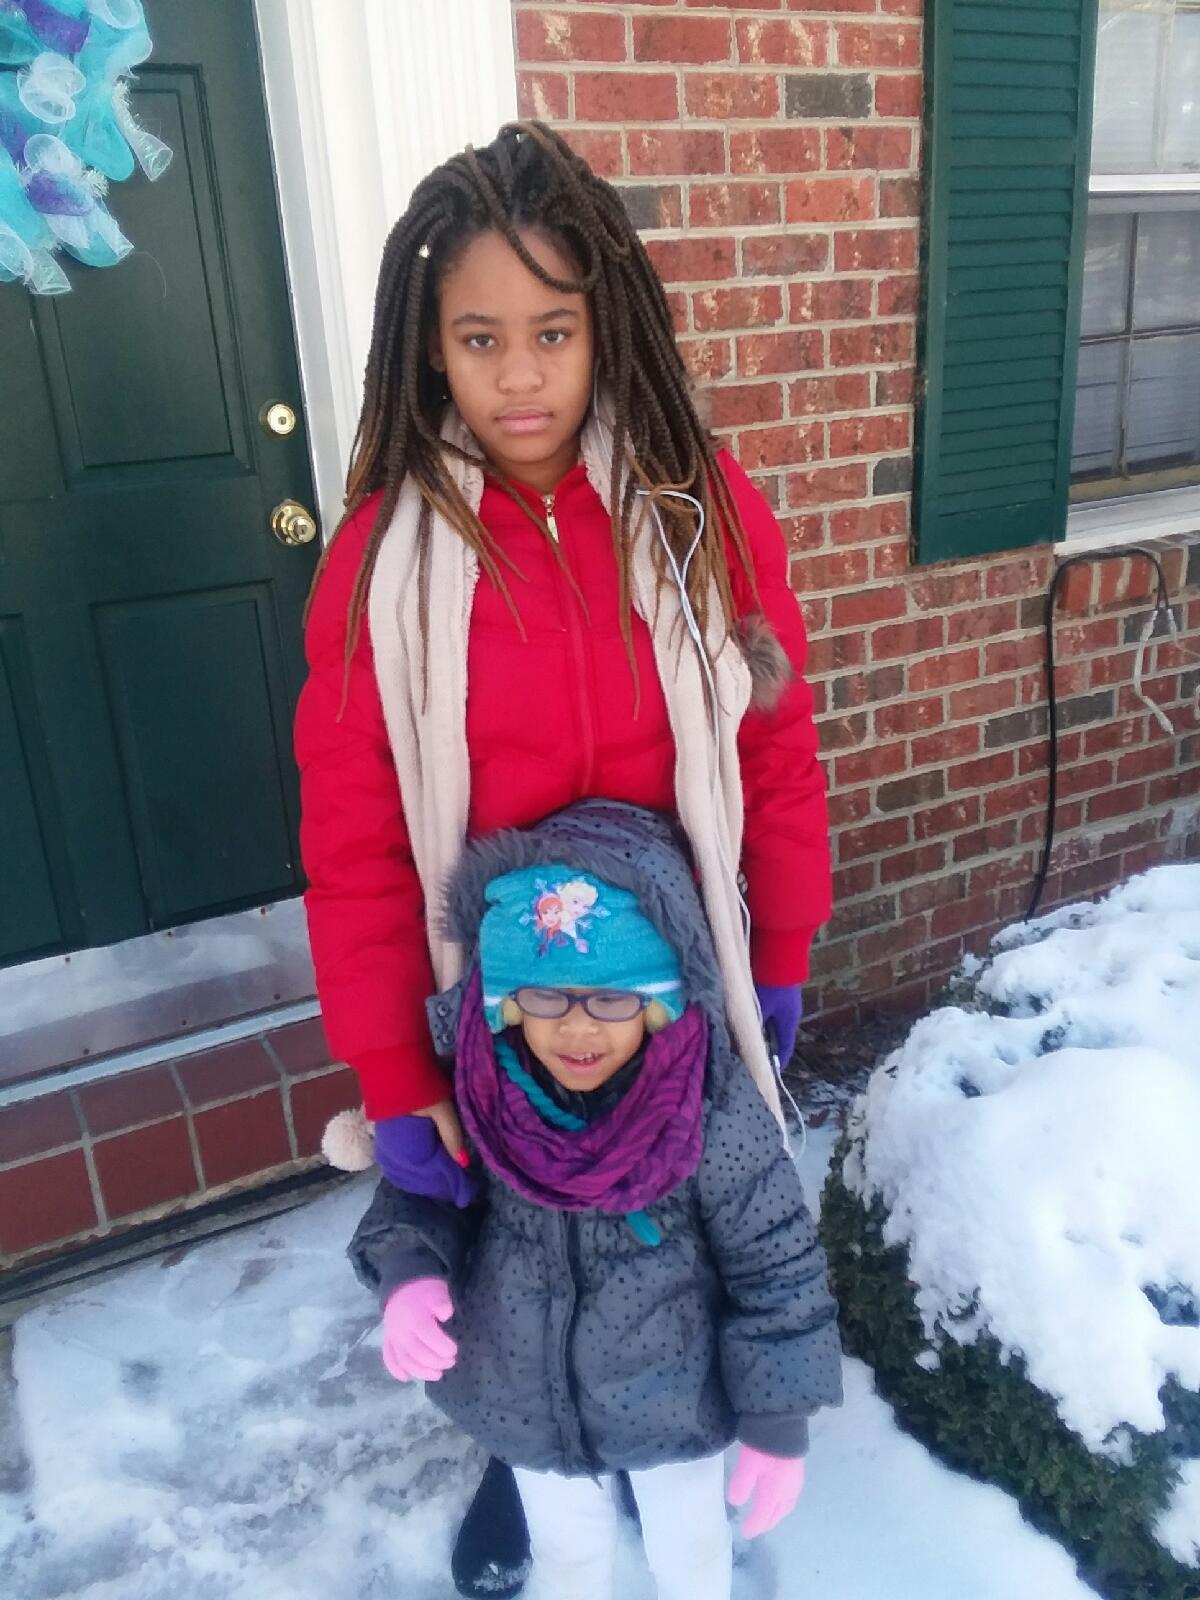 <div class='meta'><div class='origin-logo' data-origin='none'></div><span class='caption-text' data-credit='Regina Emerson - ABC11 Eyewitness'>Jasney Emerson and Kinley Howard enjoying sister love on their snow-day off.</span></div>